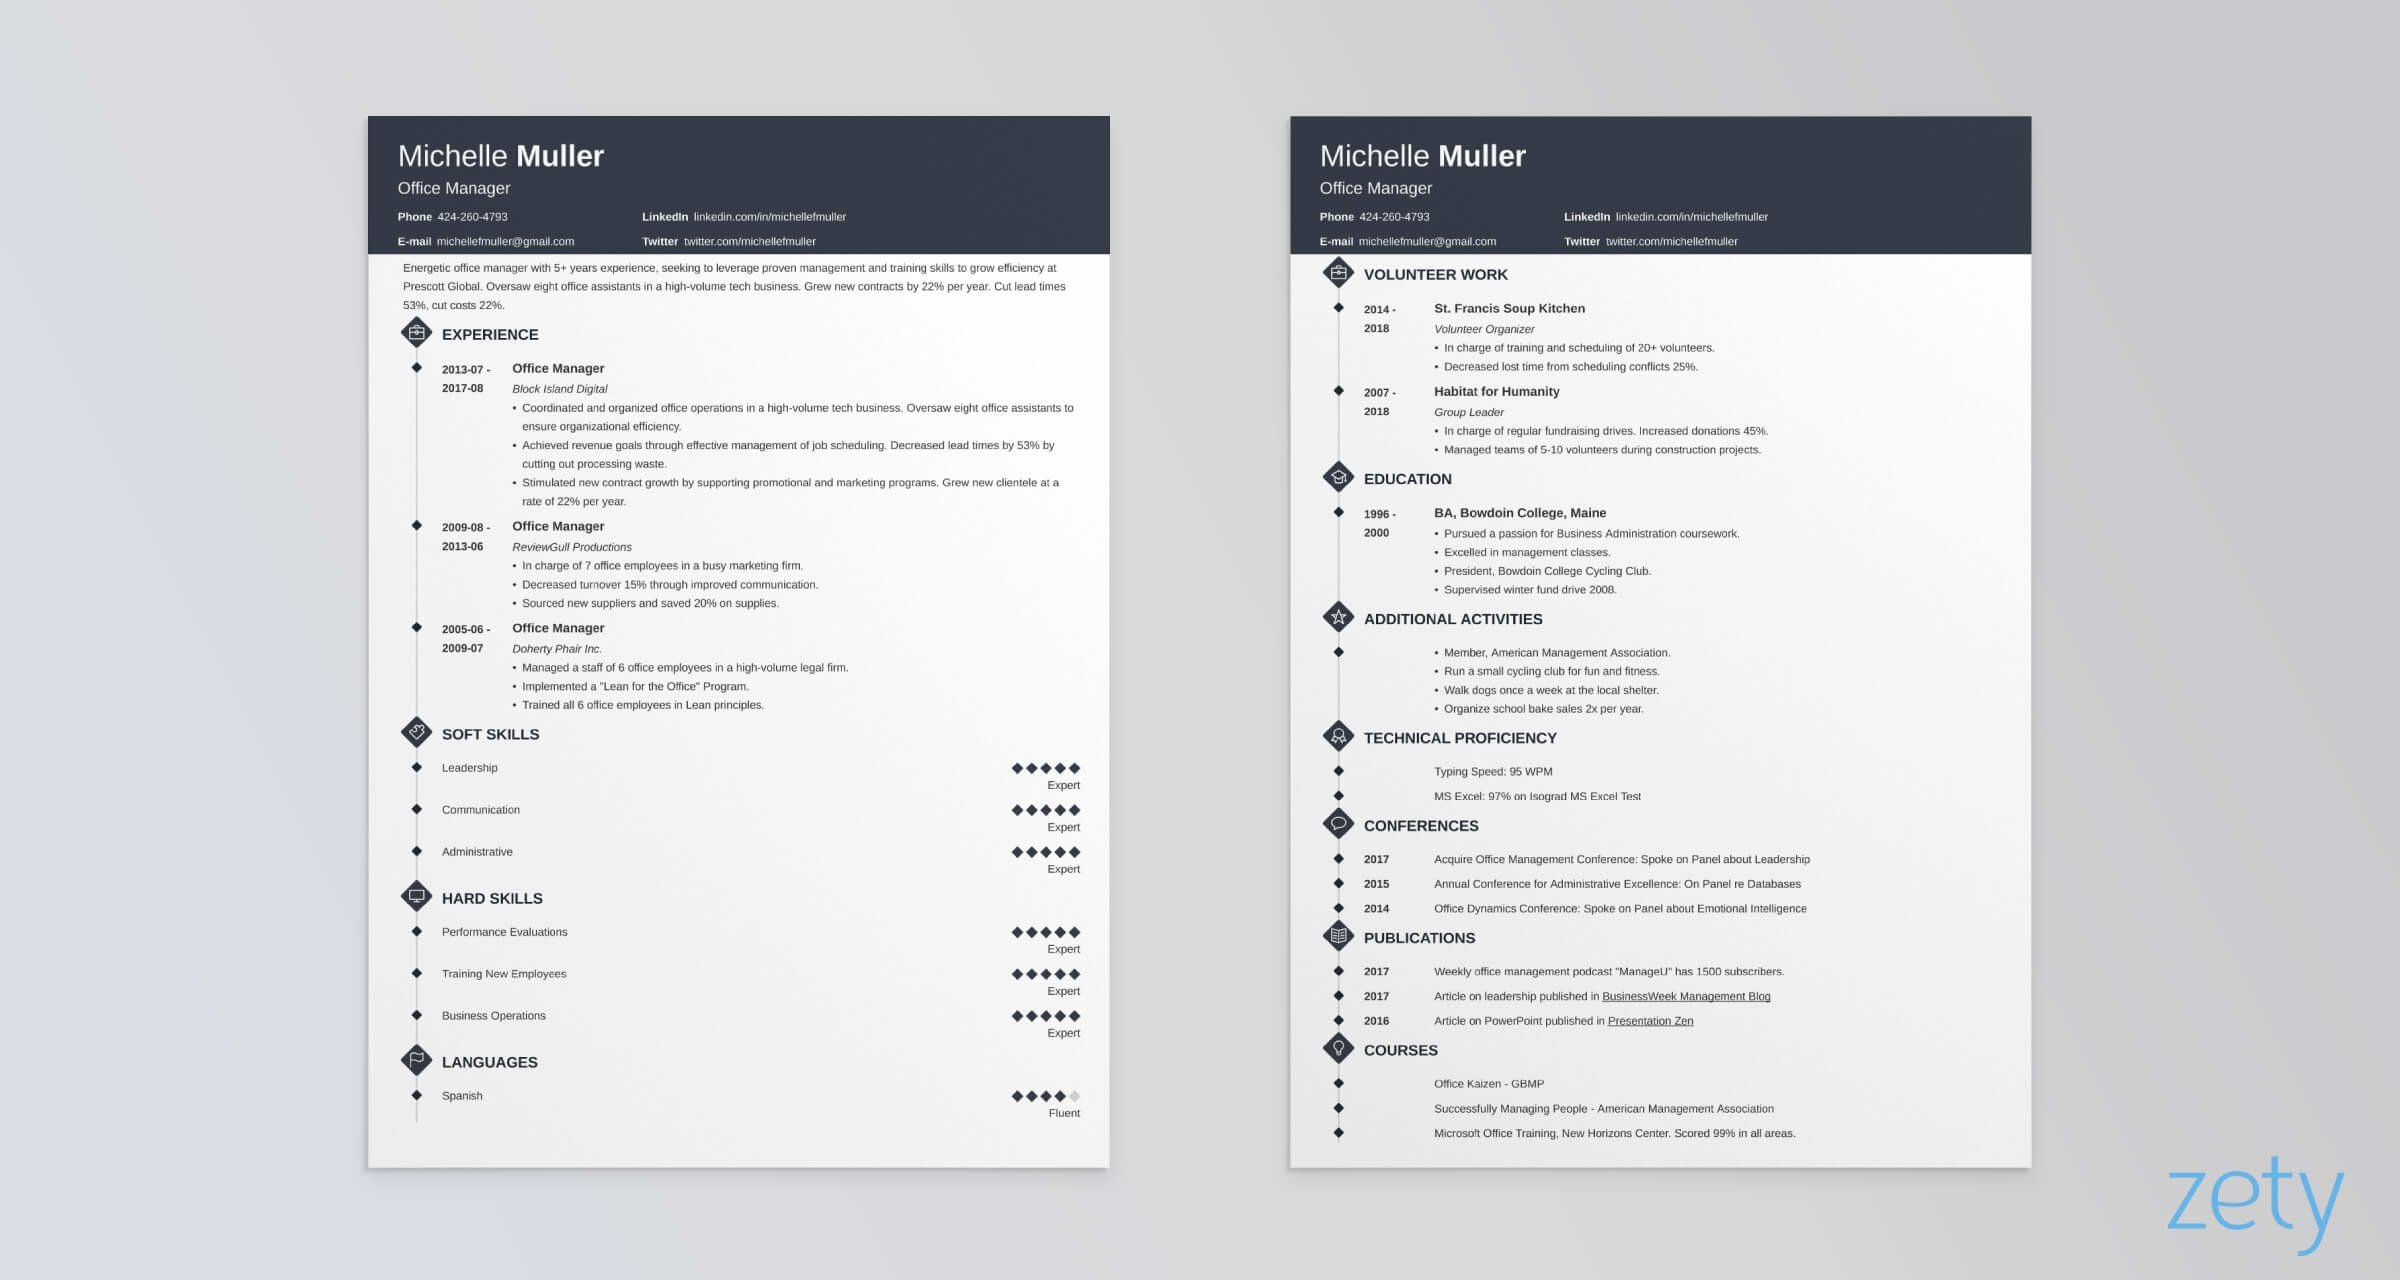 resume it crush your chances format tips one or two diamond1 writing newcastle federal Resume One Or Two Page Resume 2019